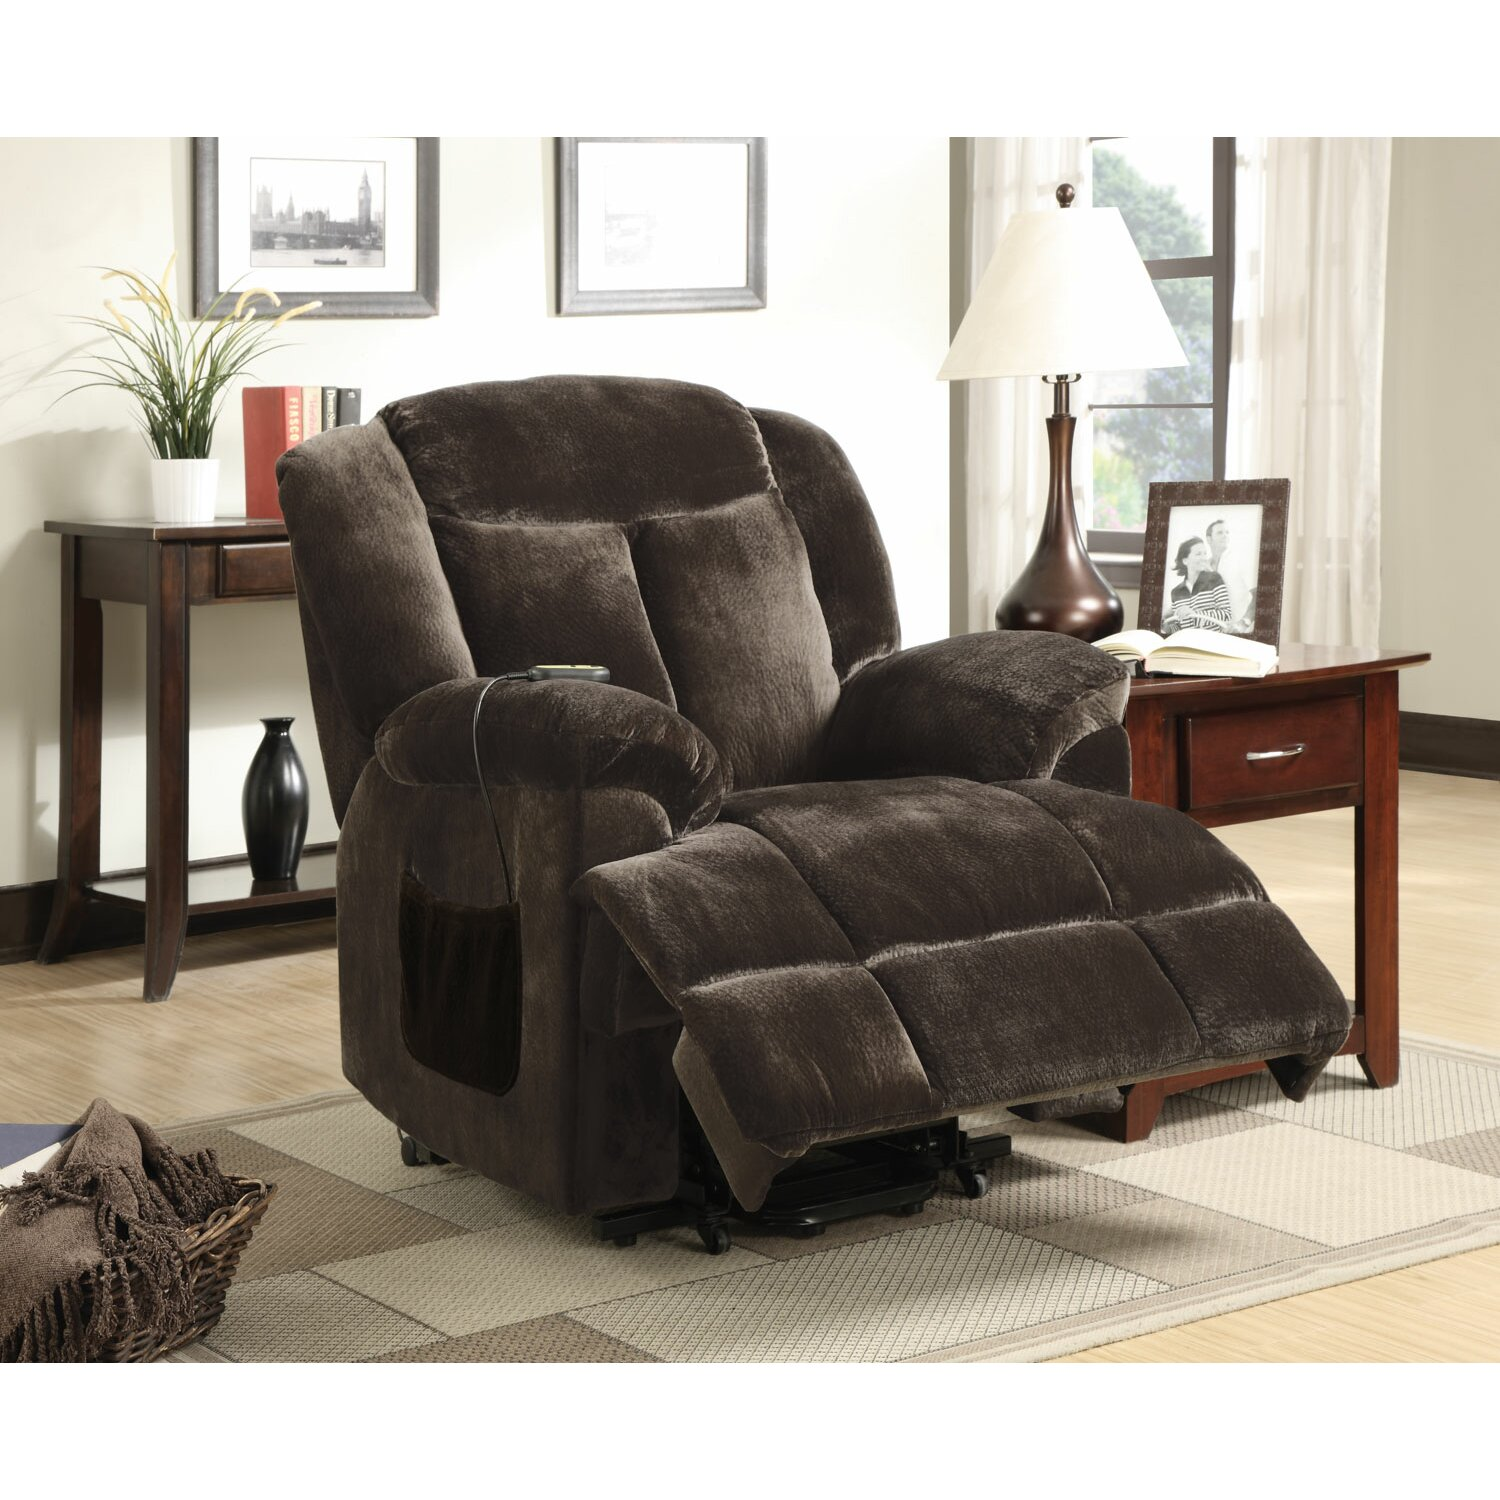 Wildon Home Power Lift Recliner Reviews Wayfair